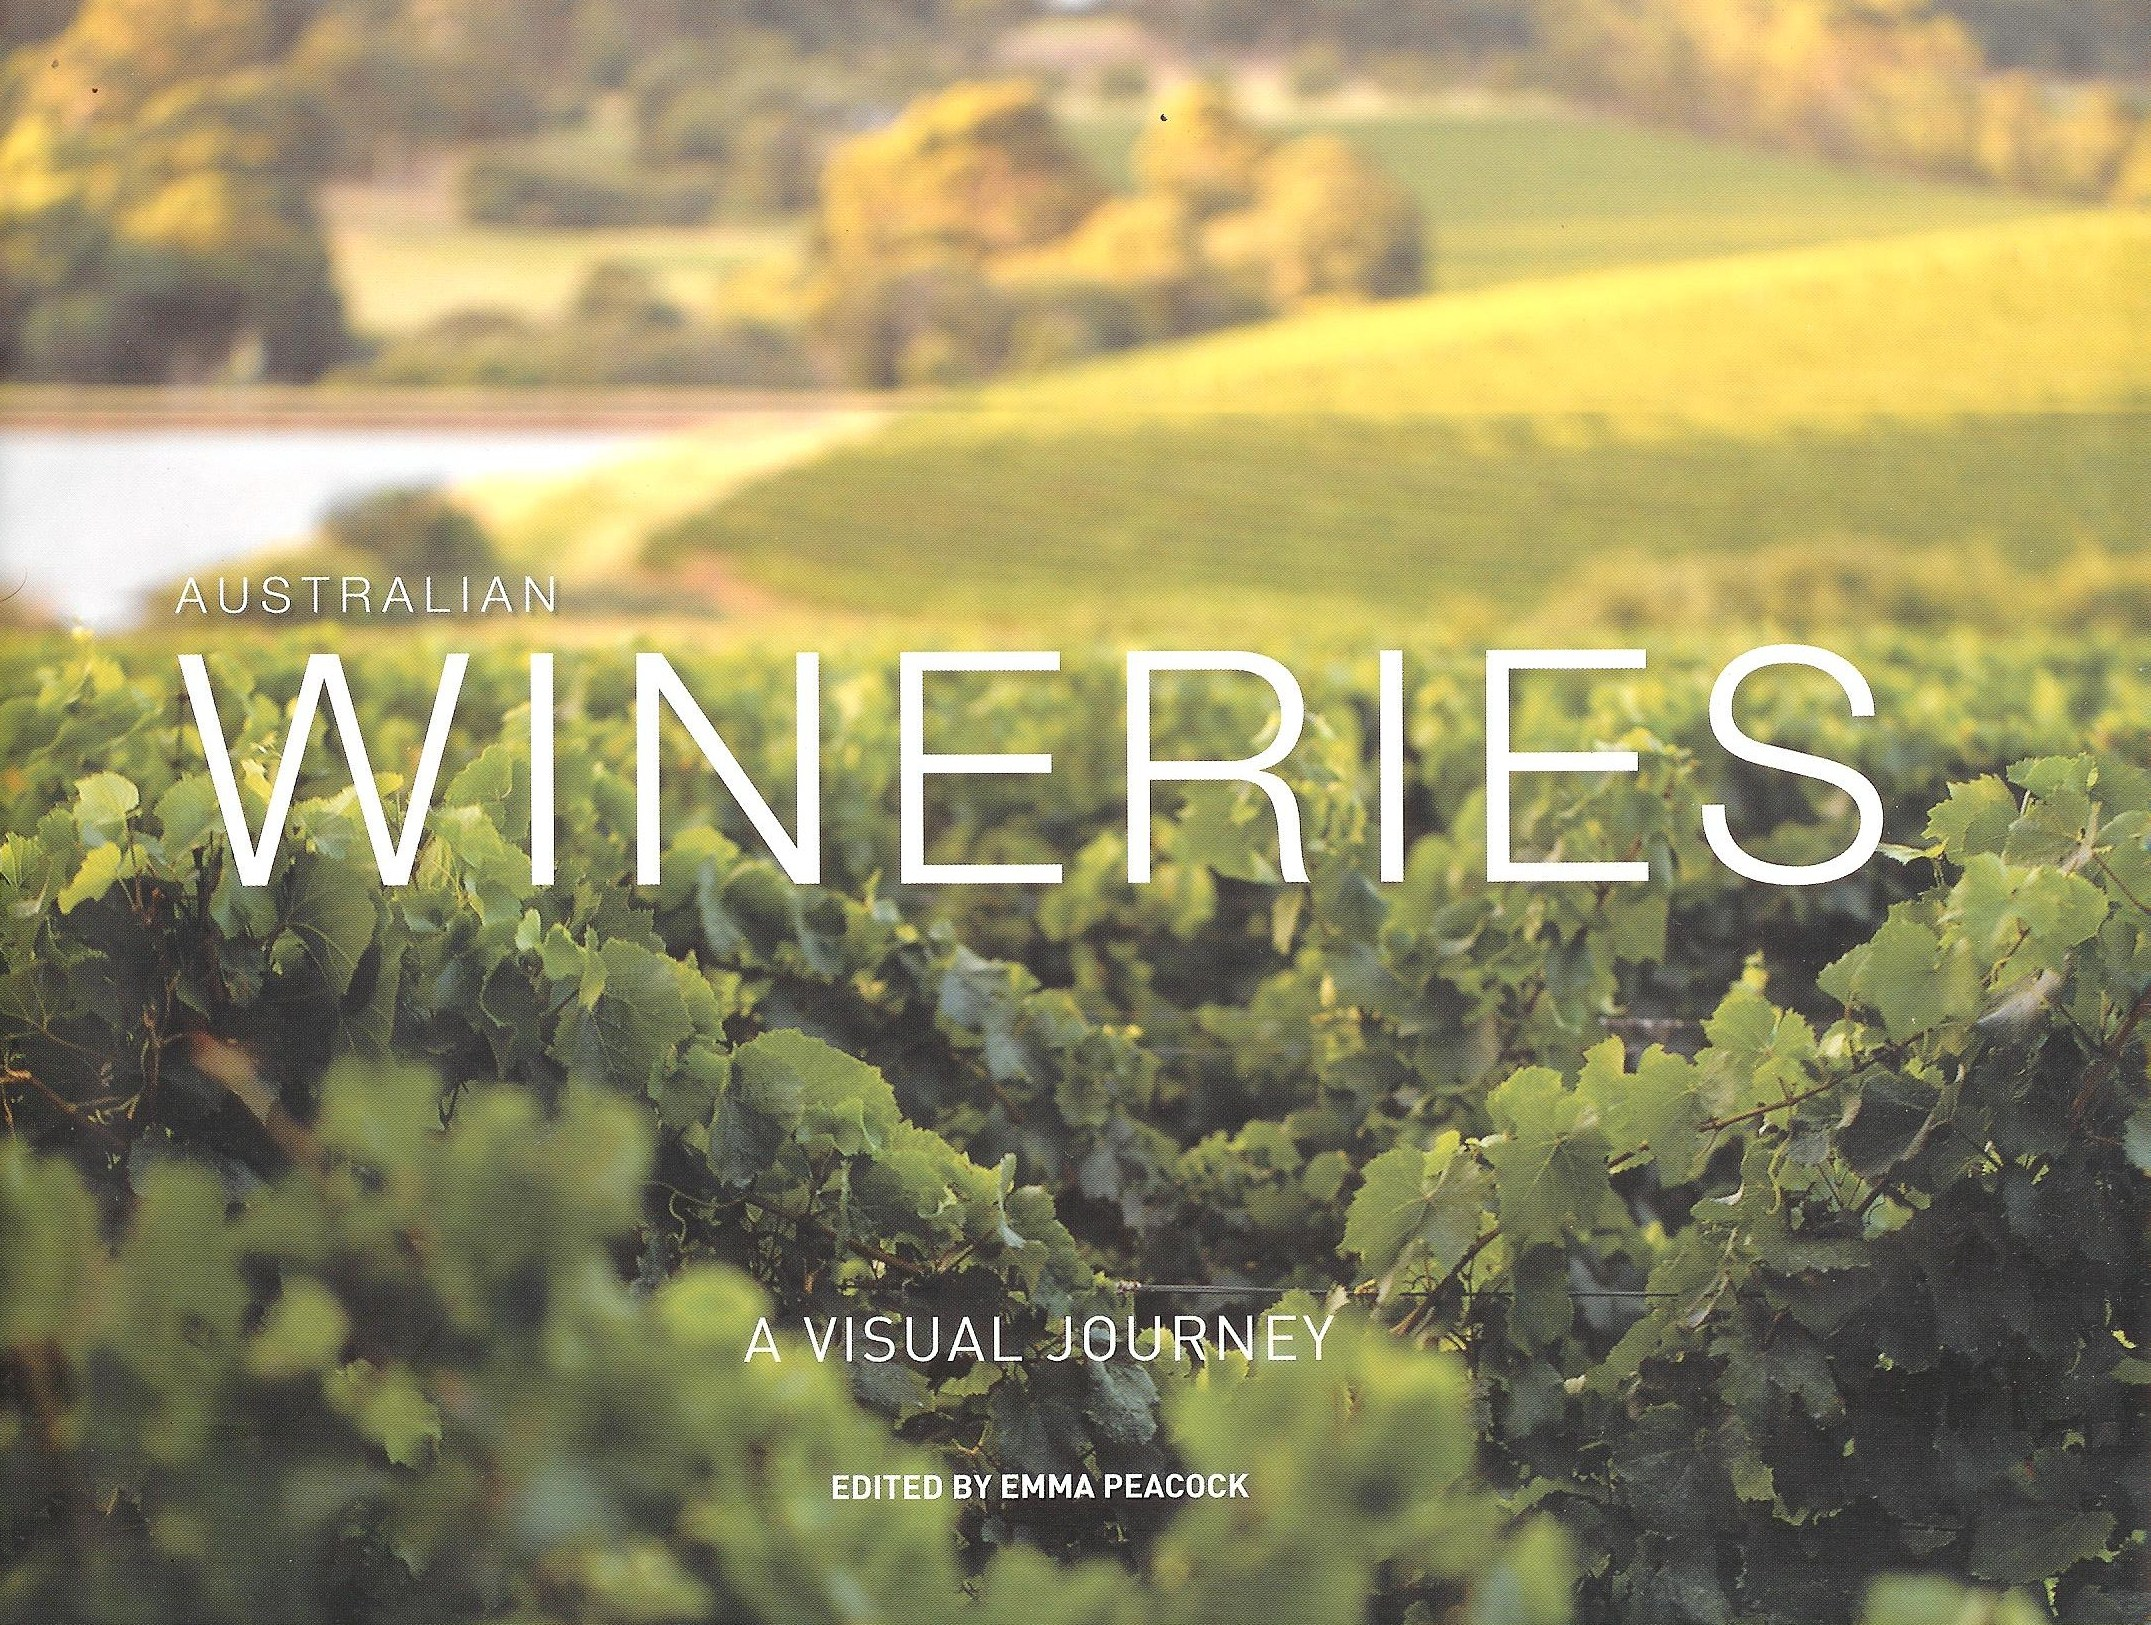 Book - Australian Wineries featuring GE - 2012